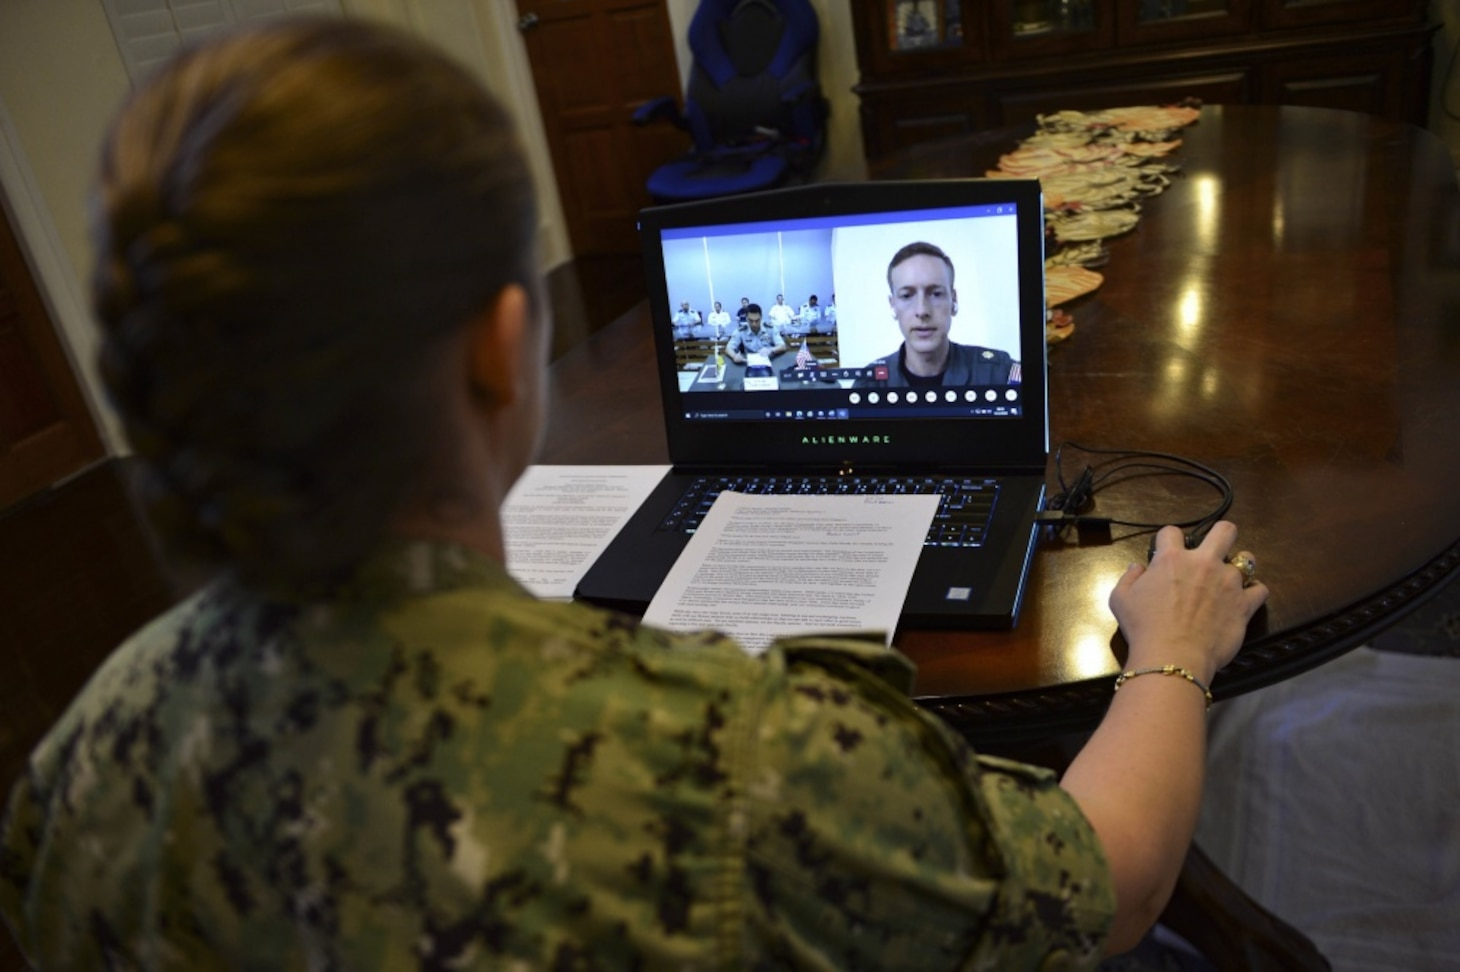 SINGAPORE (Oct. 5, 2020) – Capt. Ann McCann, commodore of Destroyer Squadron 7, listens to opening remarks during a virtual opening ceremony for Cooperation Afloat Readiness and Training (CARAT) Brunei 2020. 2020 marks the 26th iteration of CARAT, a multinational exercise designed to enhance U.S. and partner navies' abilities to operate together in response to traditional and non-traditional maritime security challenges in the Indo-Pacific region.